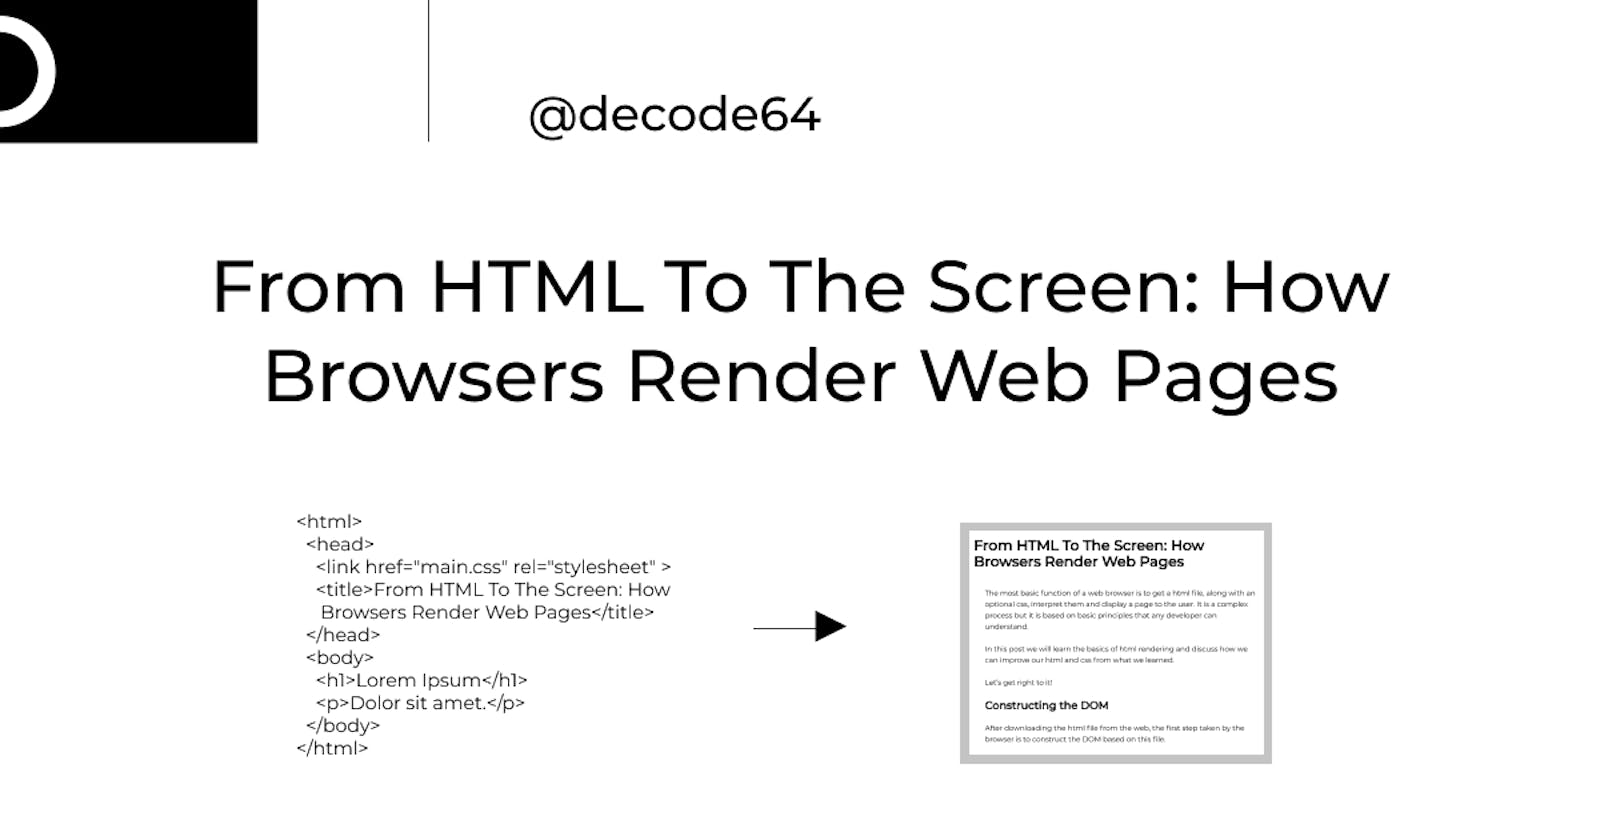 From HTML To The Screen: How Browsers Render Web Pages